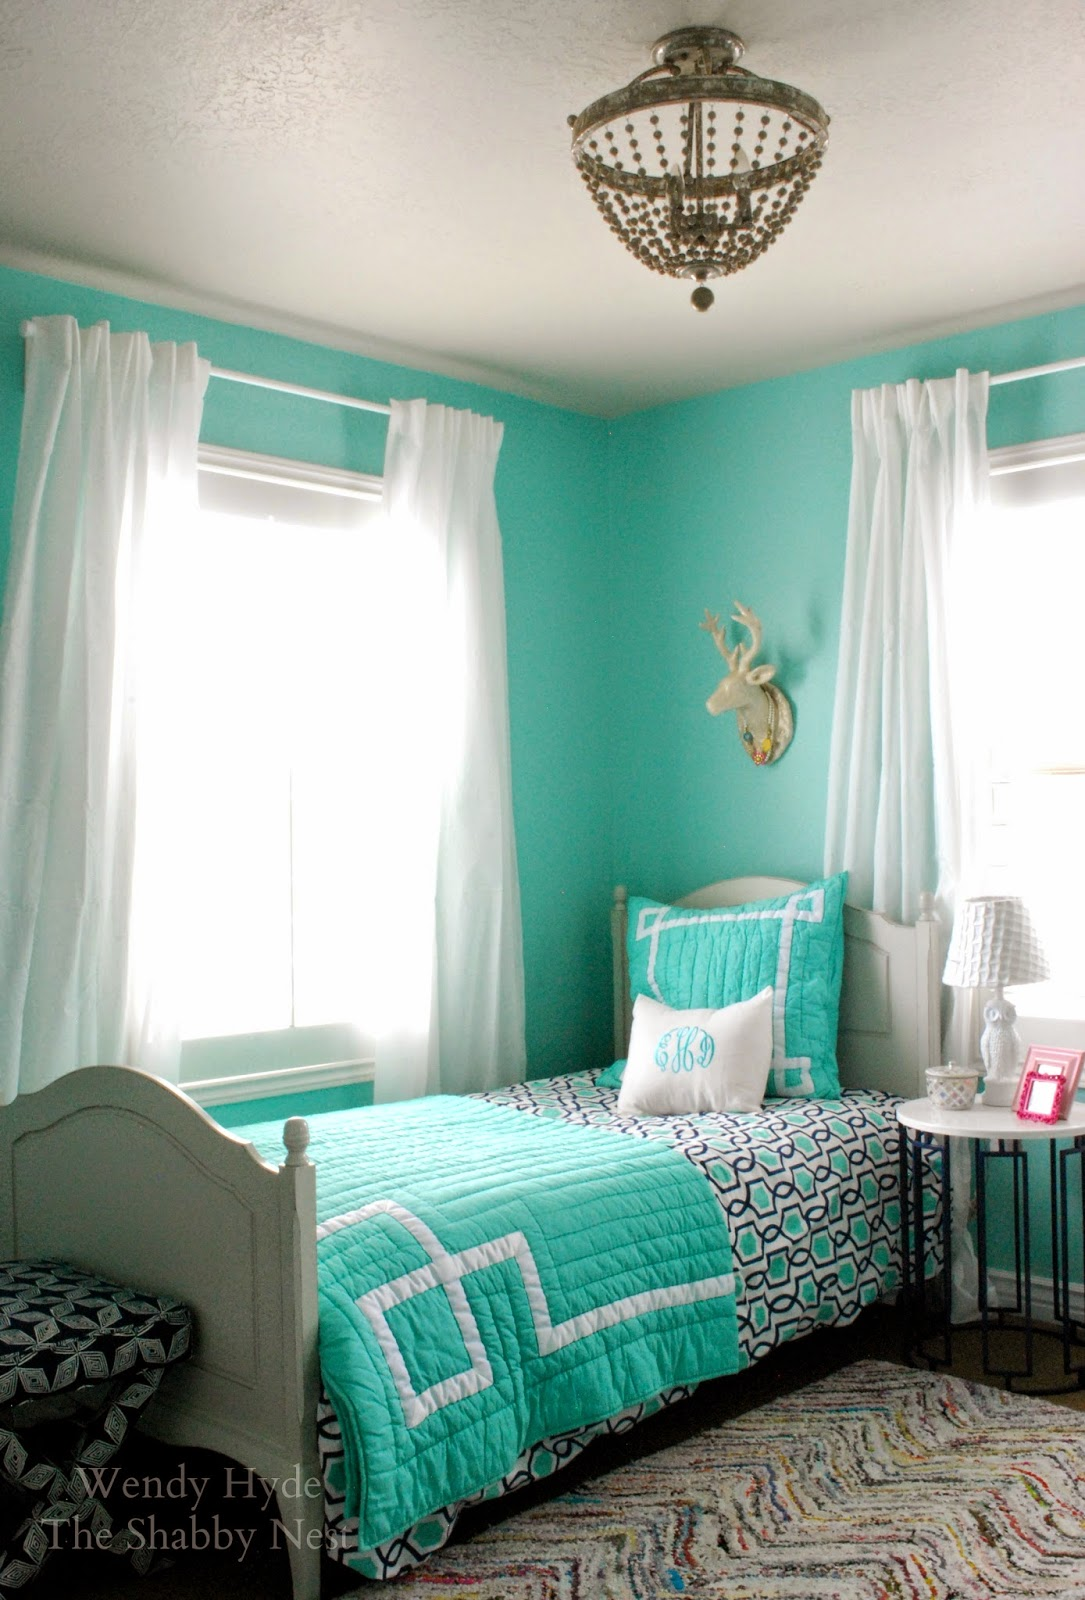 The shabby nest one room challenge the teen girl 39 s bedroom reveal - Bed room for teen ...